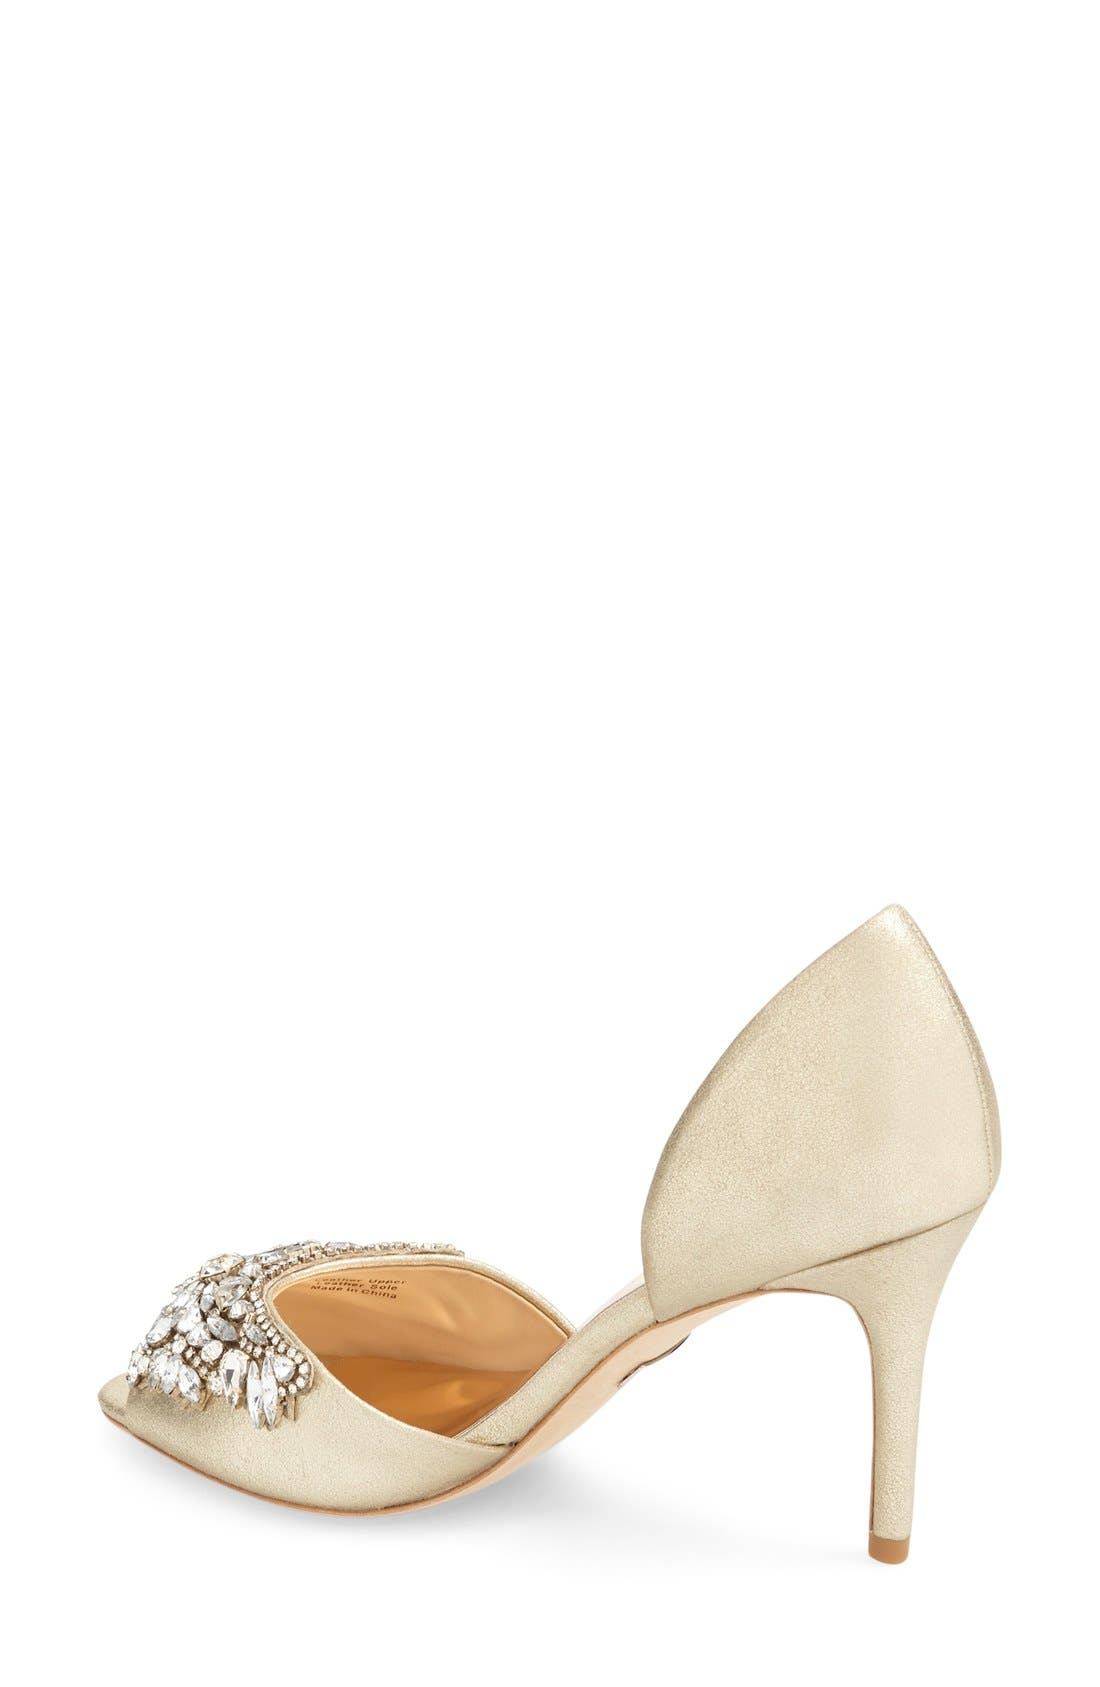 'Candance' Crystal Embellished d'Orsay Pump,                             Alternate thumbnail 3, color,                             040